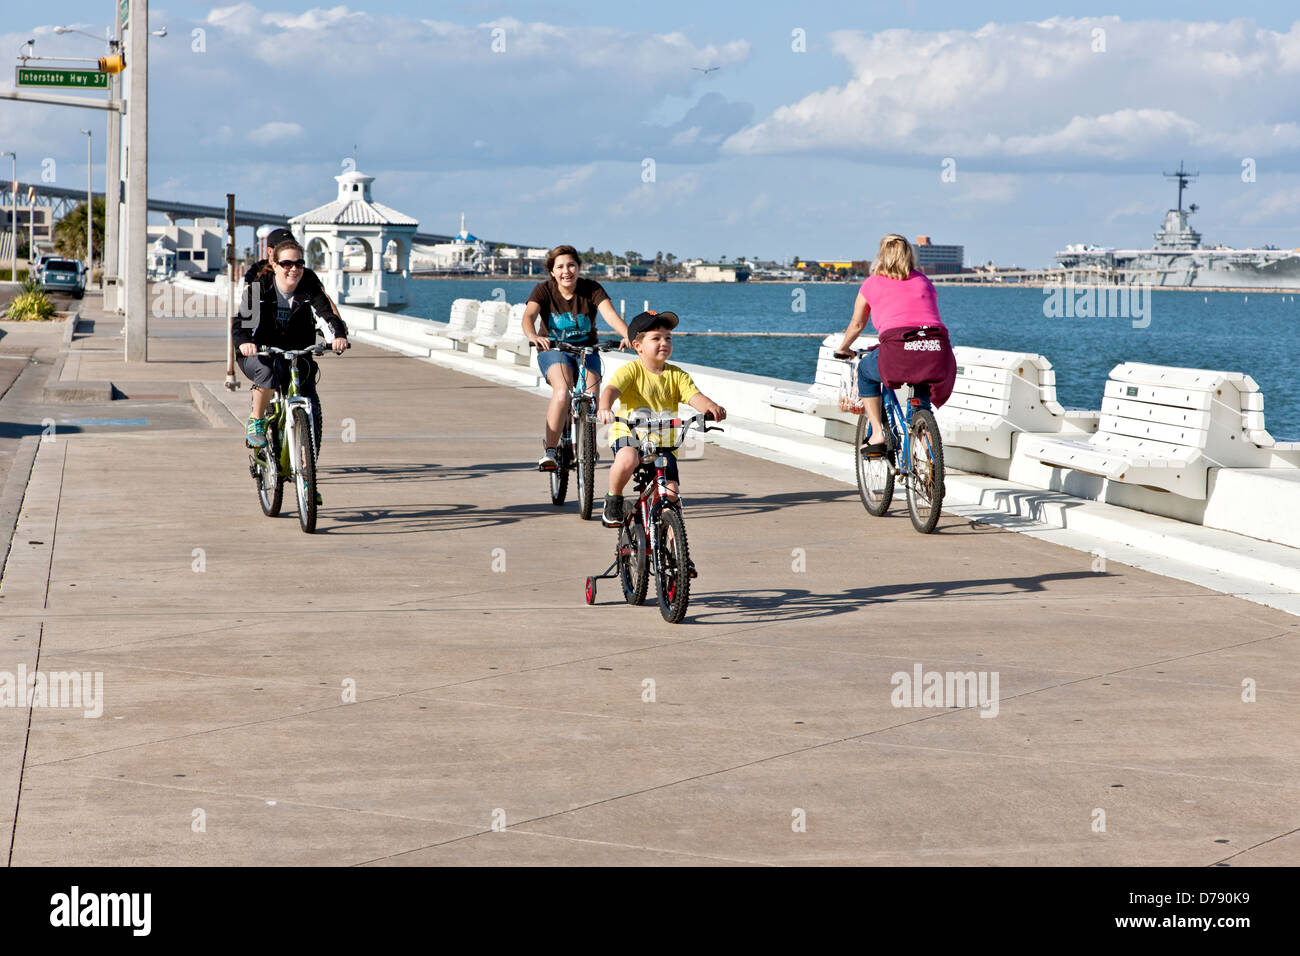 Family bicycling, North Shoreline Blvd. - Stock Image